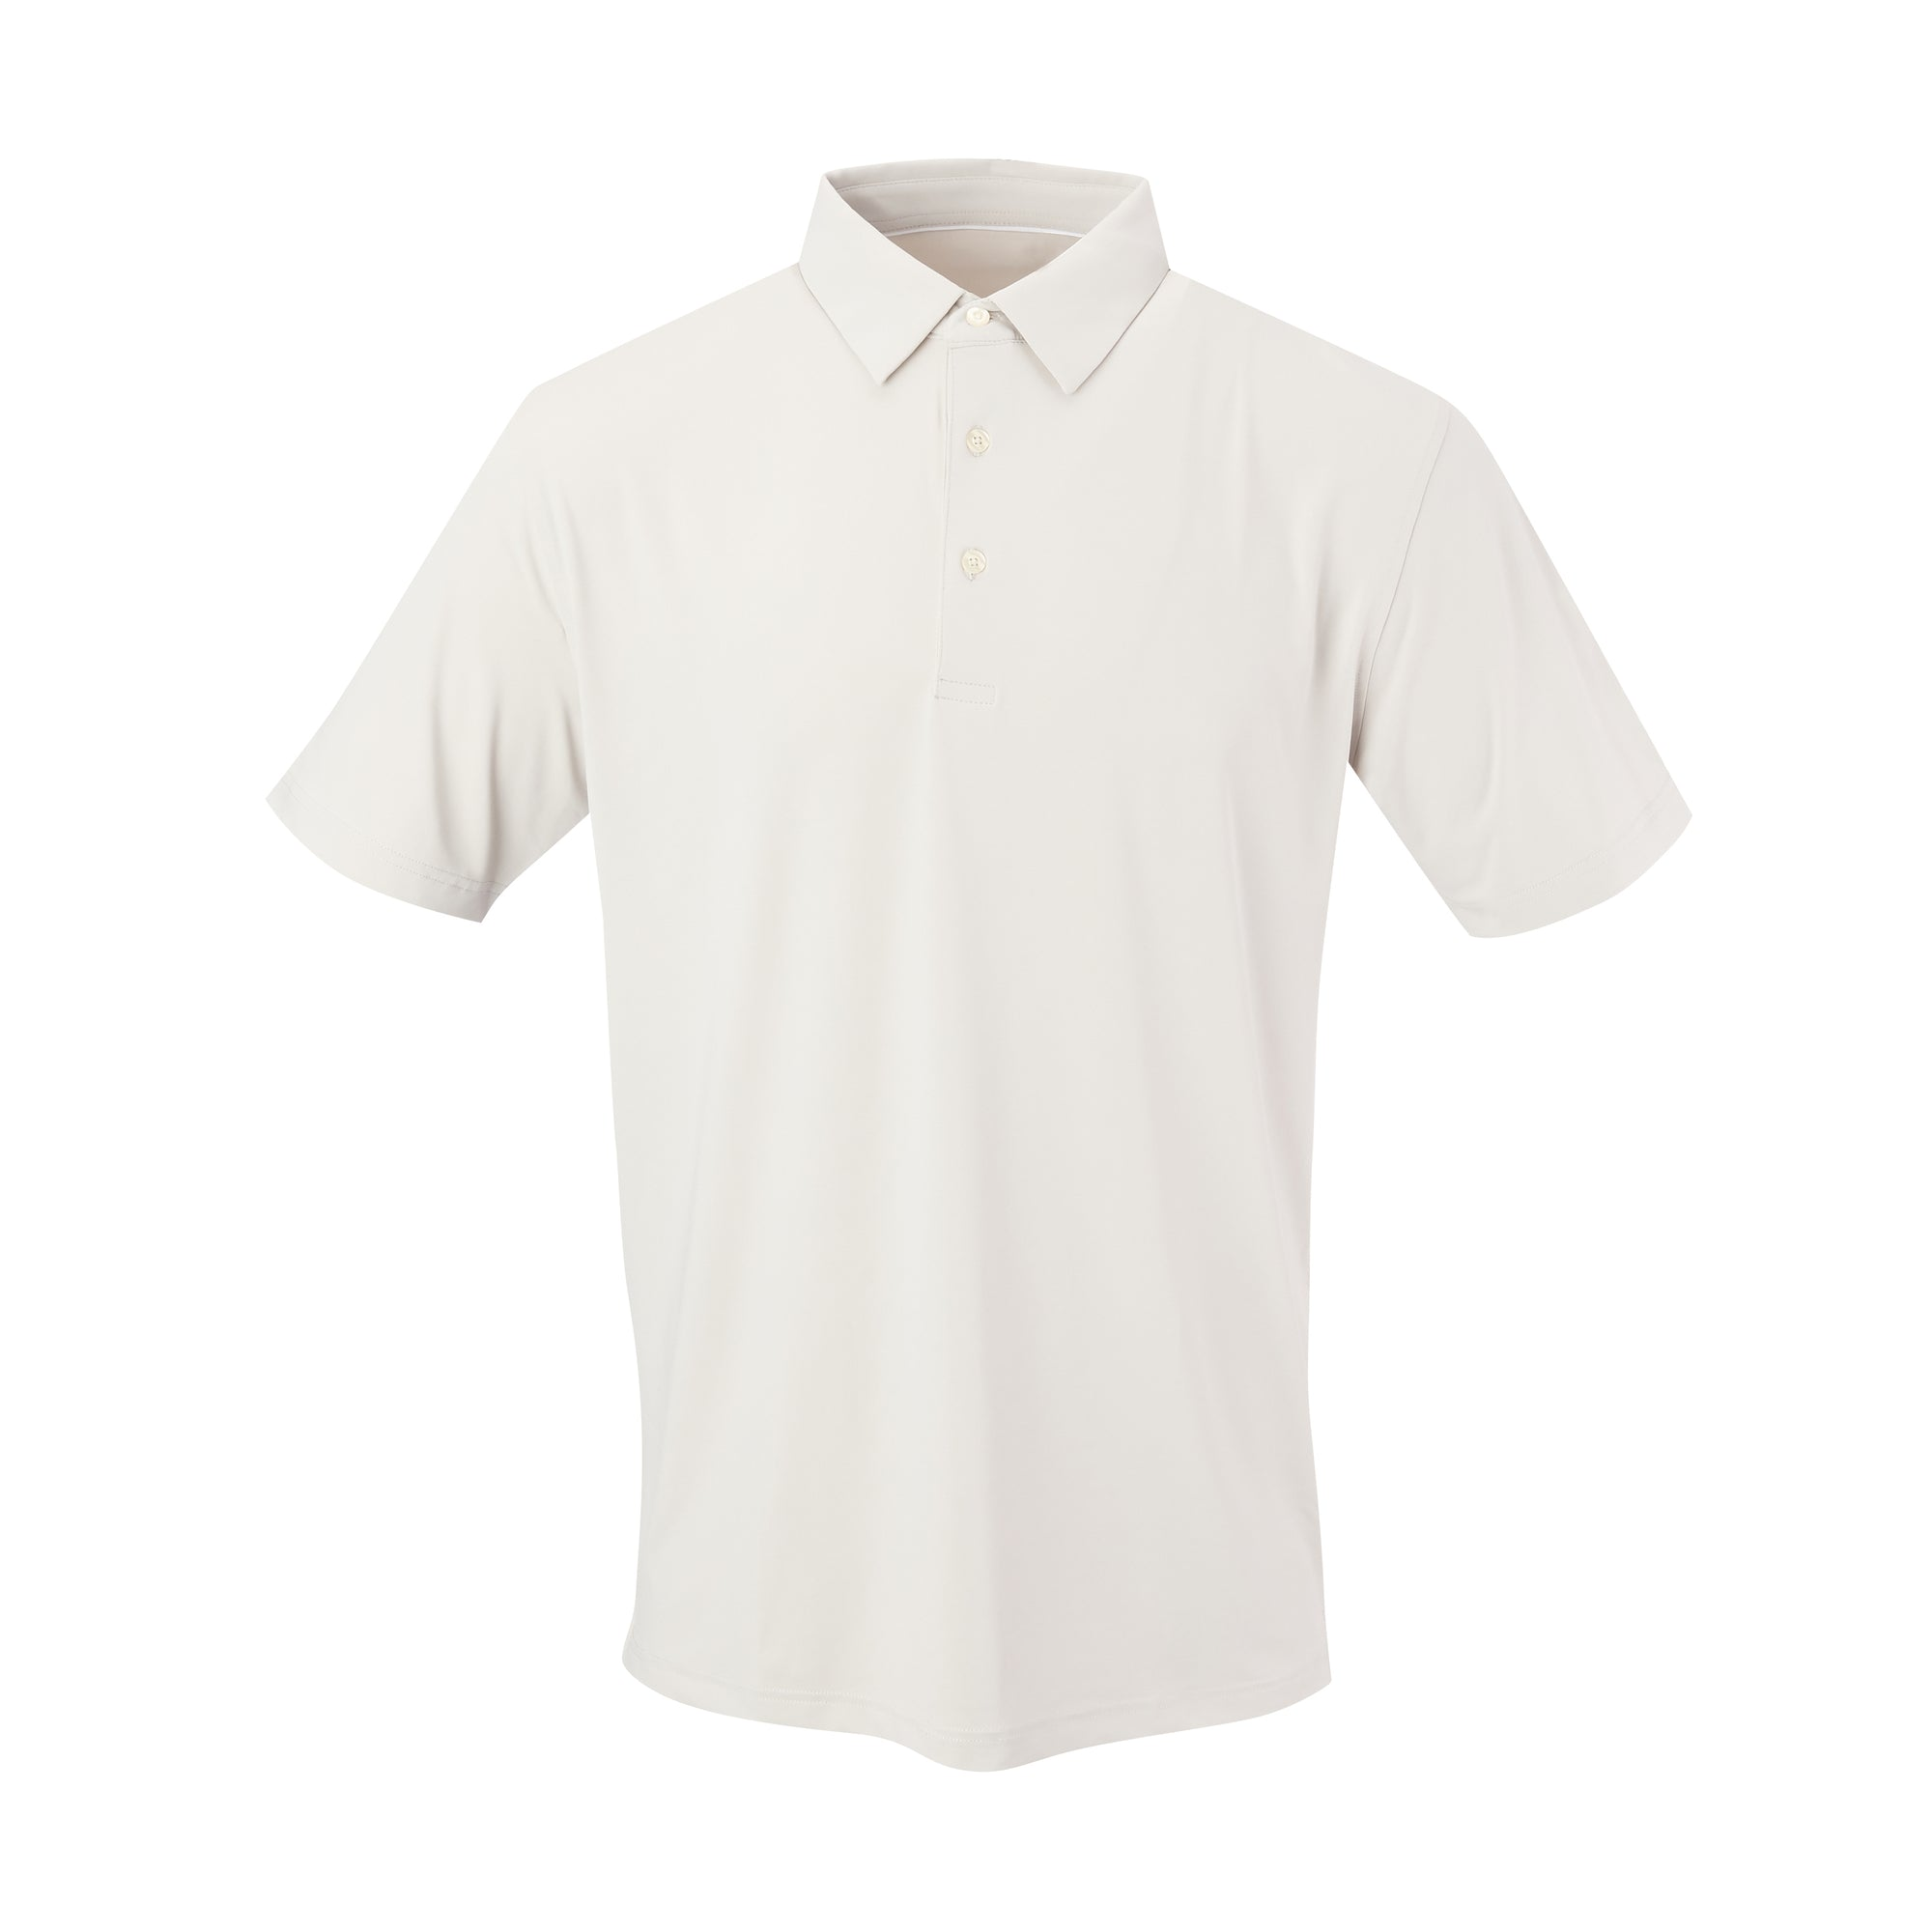 THE CLASSIC SHORT SLEEVE POLO - Cloud IS26000